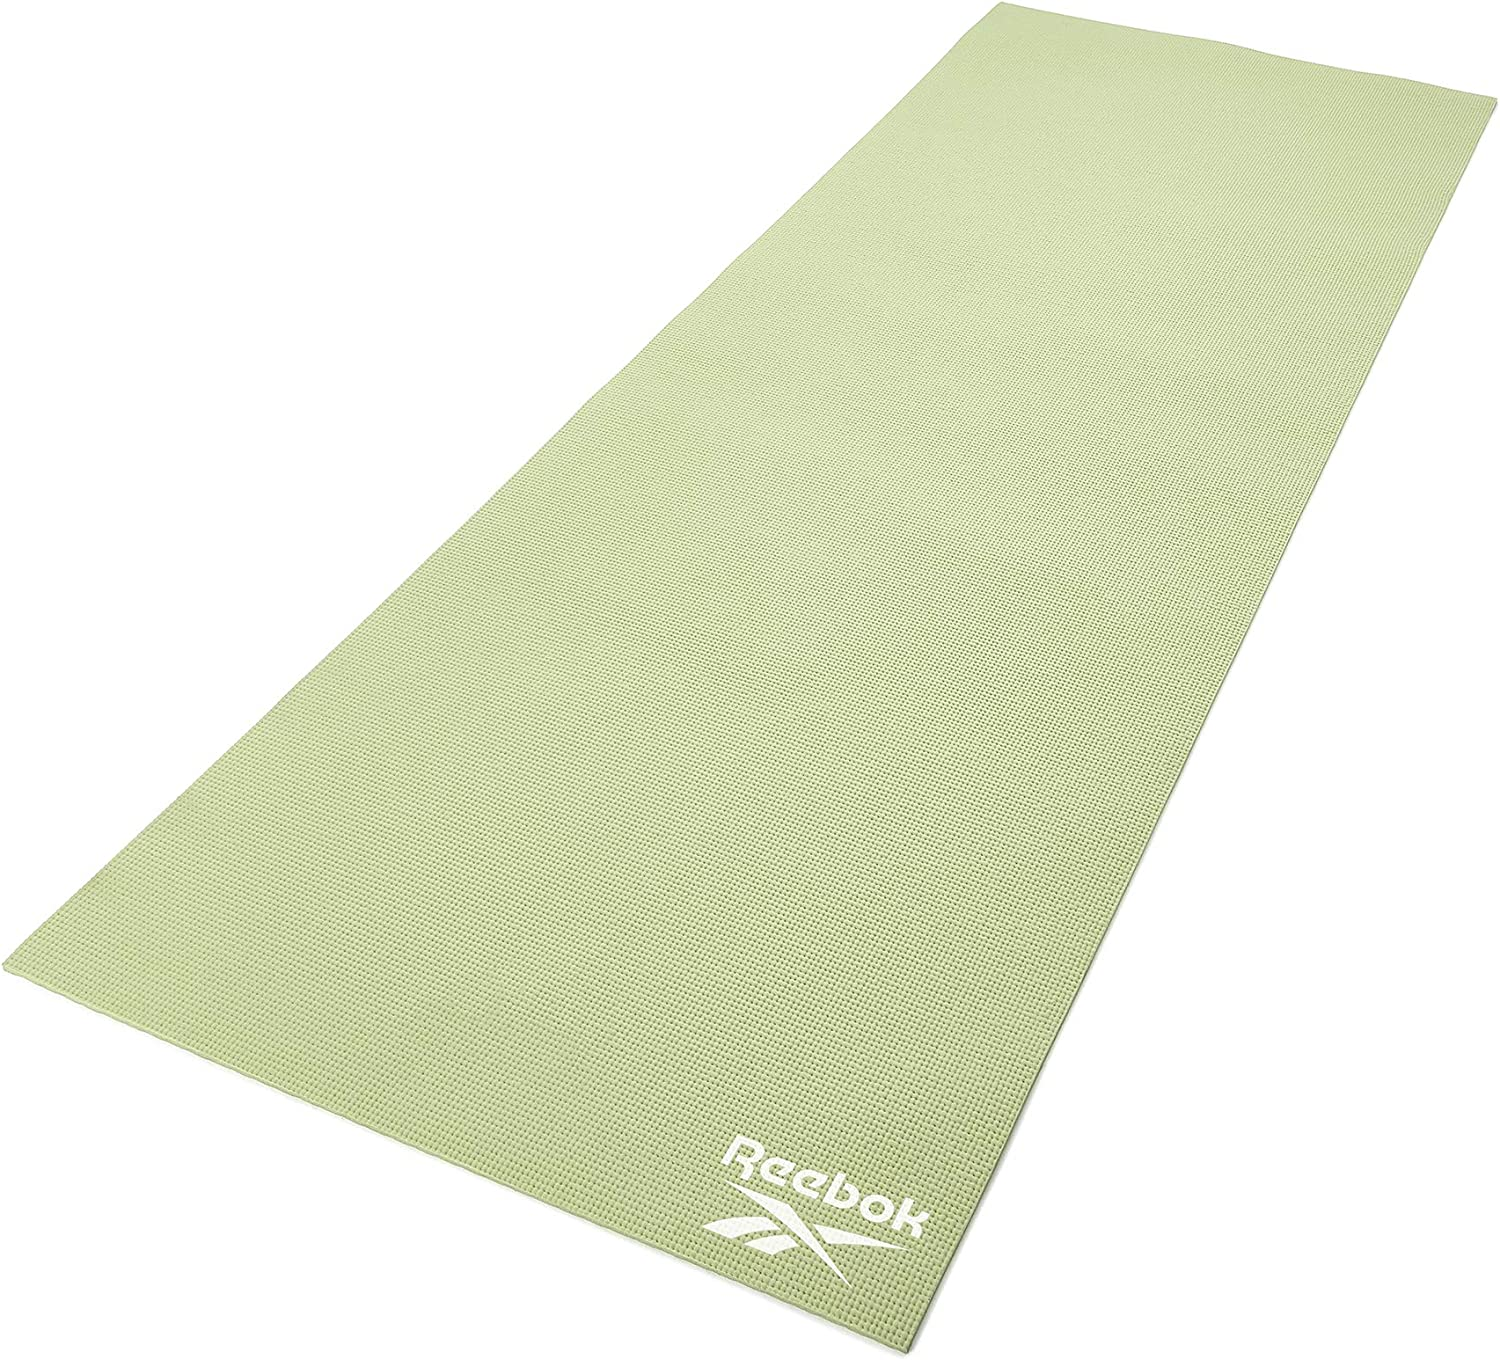 Amazon Com Reebok Fitness Equipment Yoga Mat 4 Mm Colour Green Rayg 11022gn Sports Outdoors